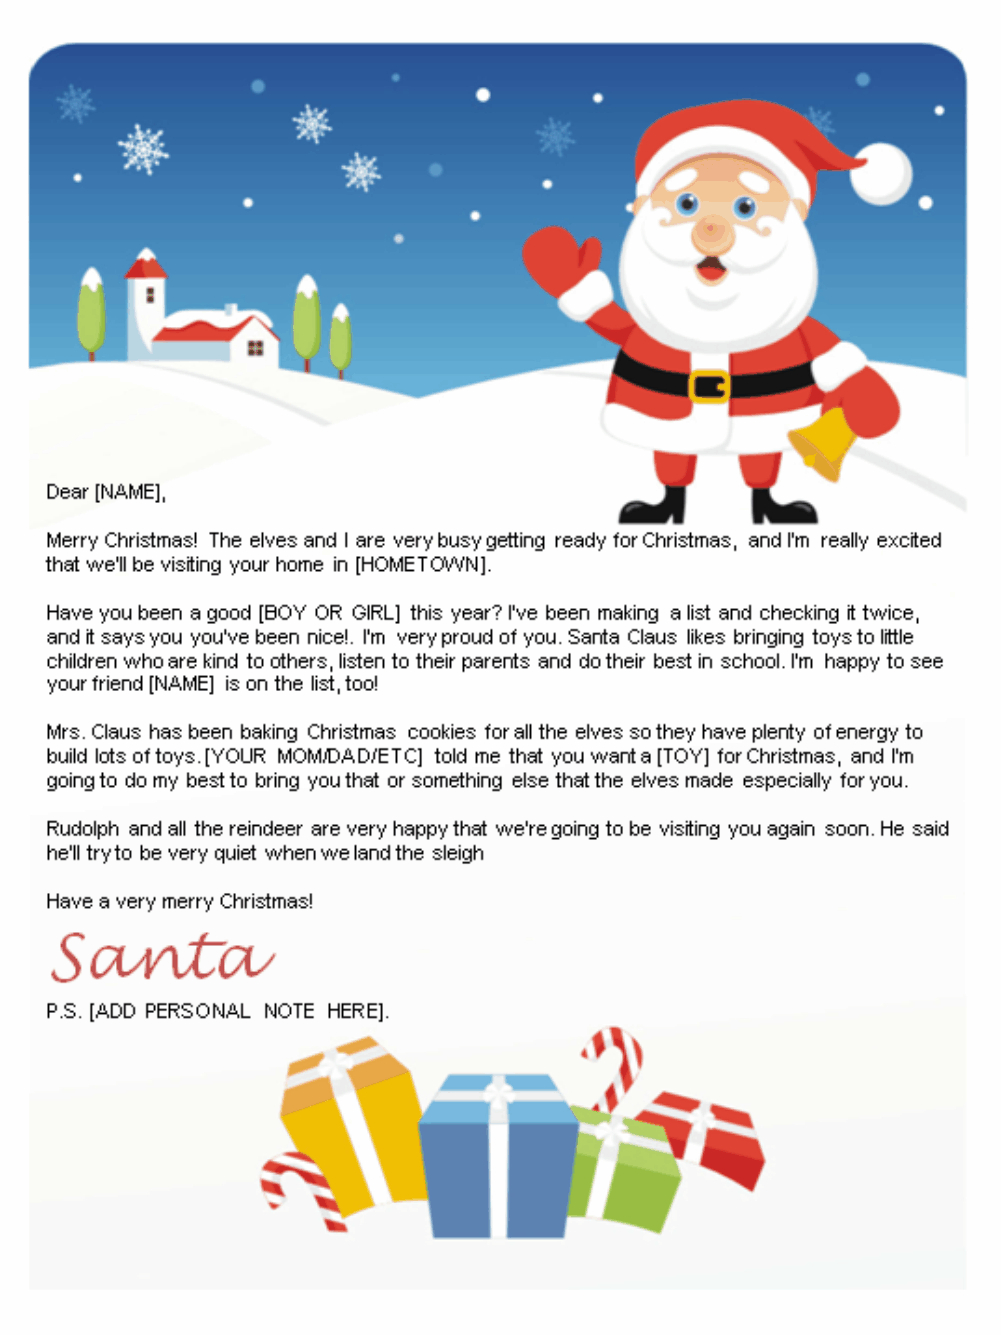 Free Letters From Santa | Santa Letters To Print At Home - Gifts - Free Printable Santa Reply Letter Template